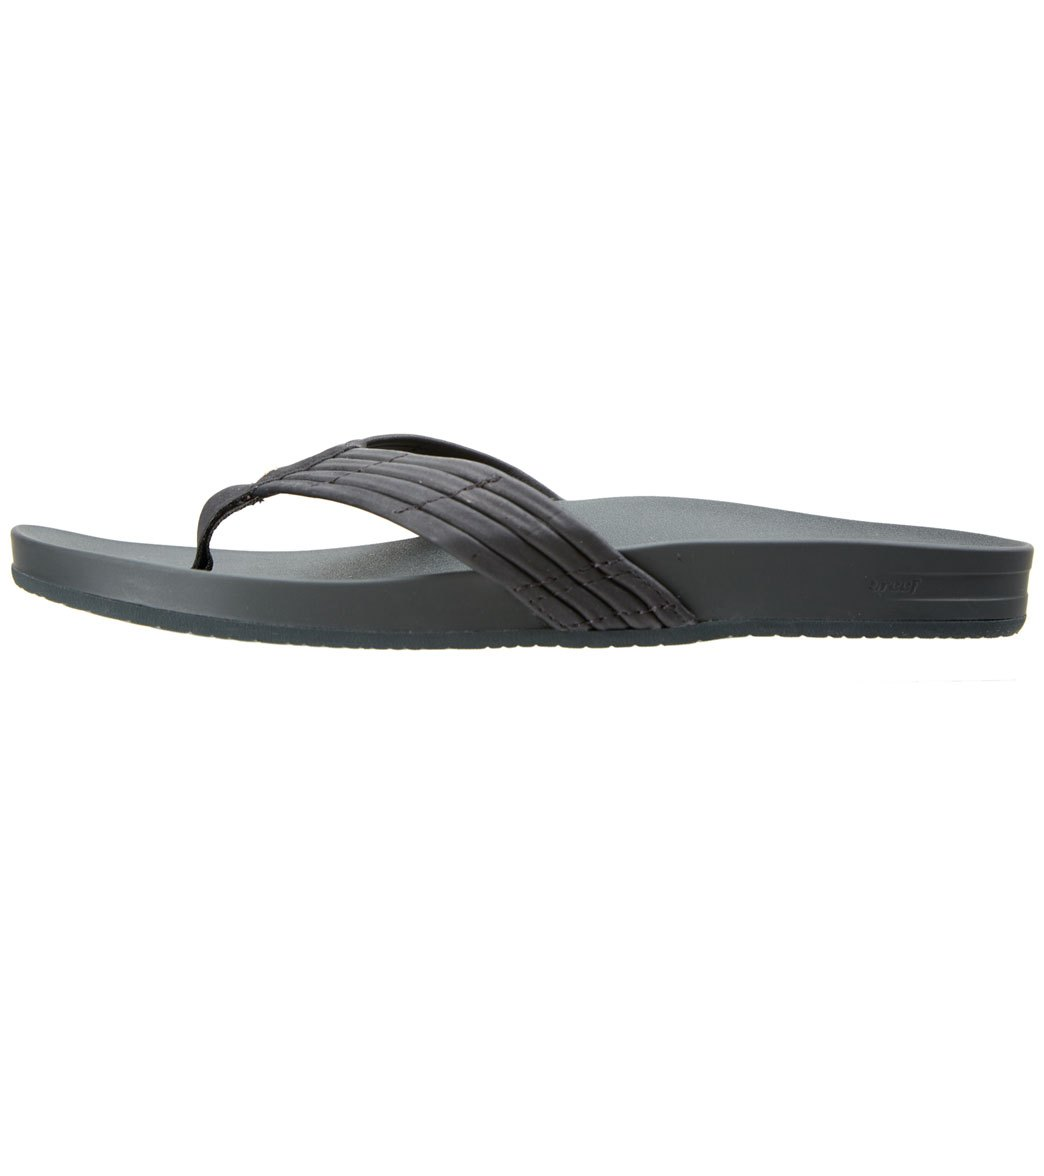 02d43f2d26fe Reef Women s Cushion Bounce Sunny Flip Flop at SwimOutlet.com